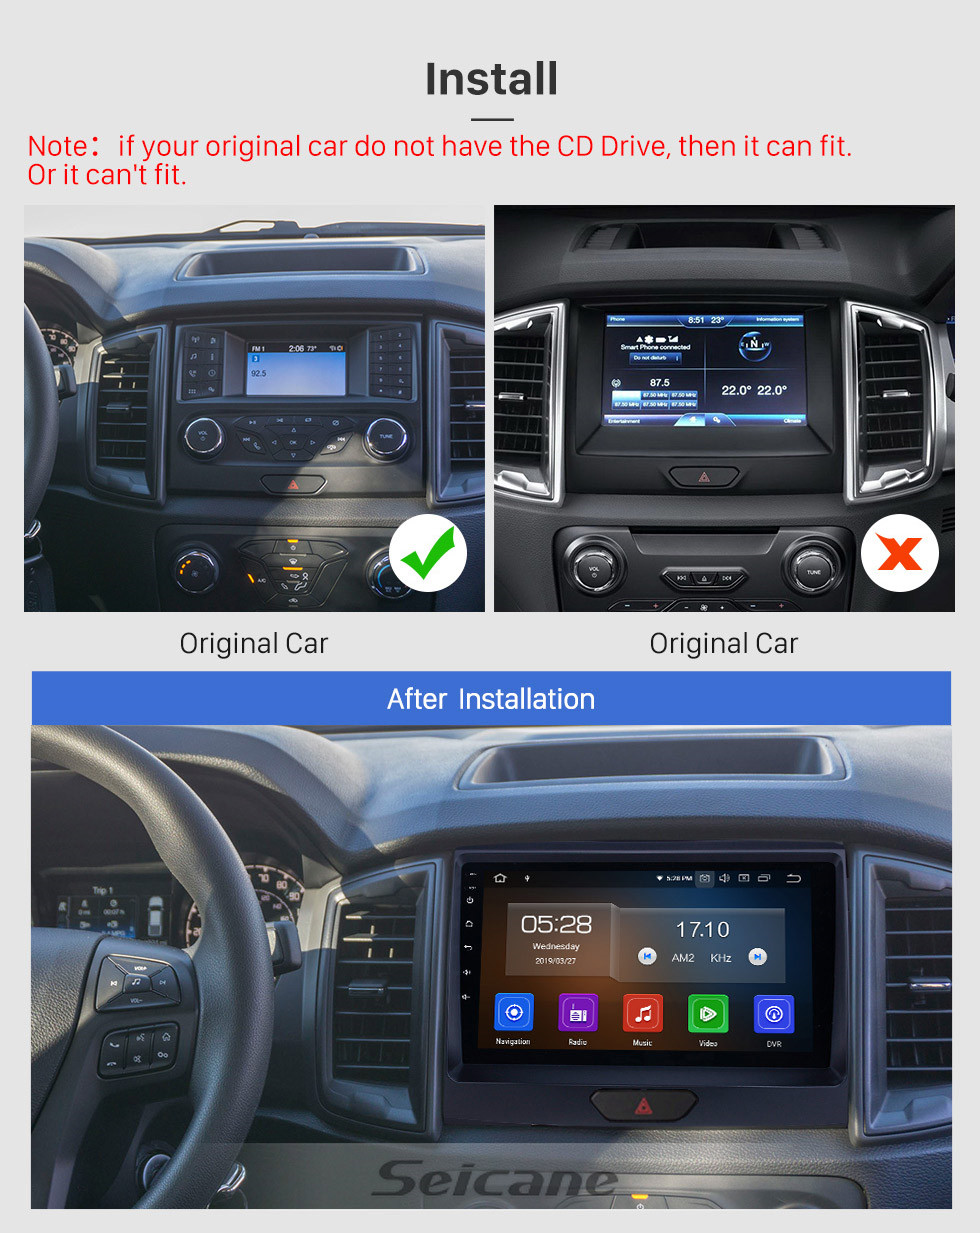 Seicane 2018 Ford Ranger Android 10.0 9 inch GPS Navigation Radio Bluetooth HD Touchscreen WIFI USB Carplay support DAB+ SWC